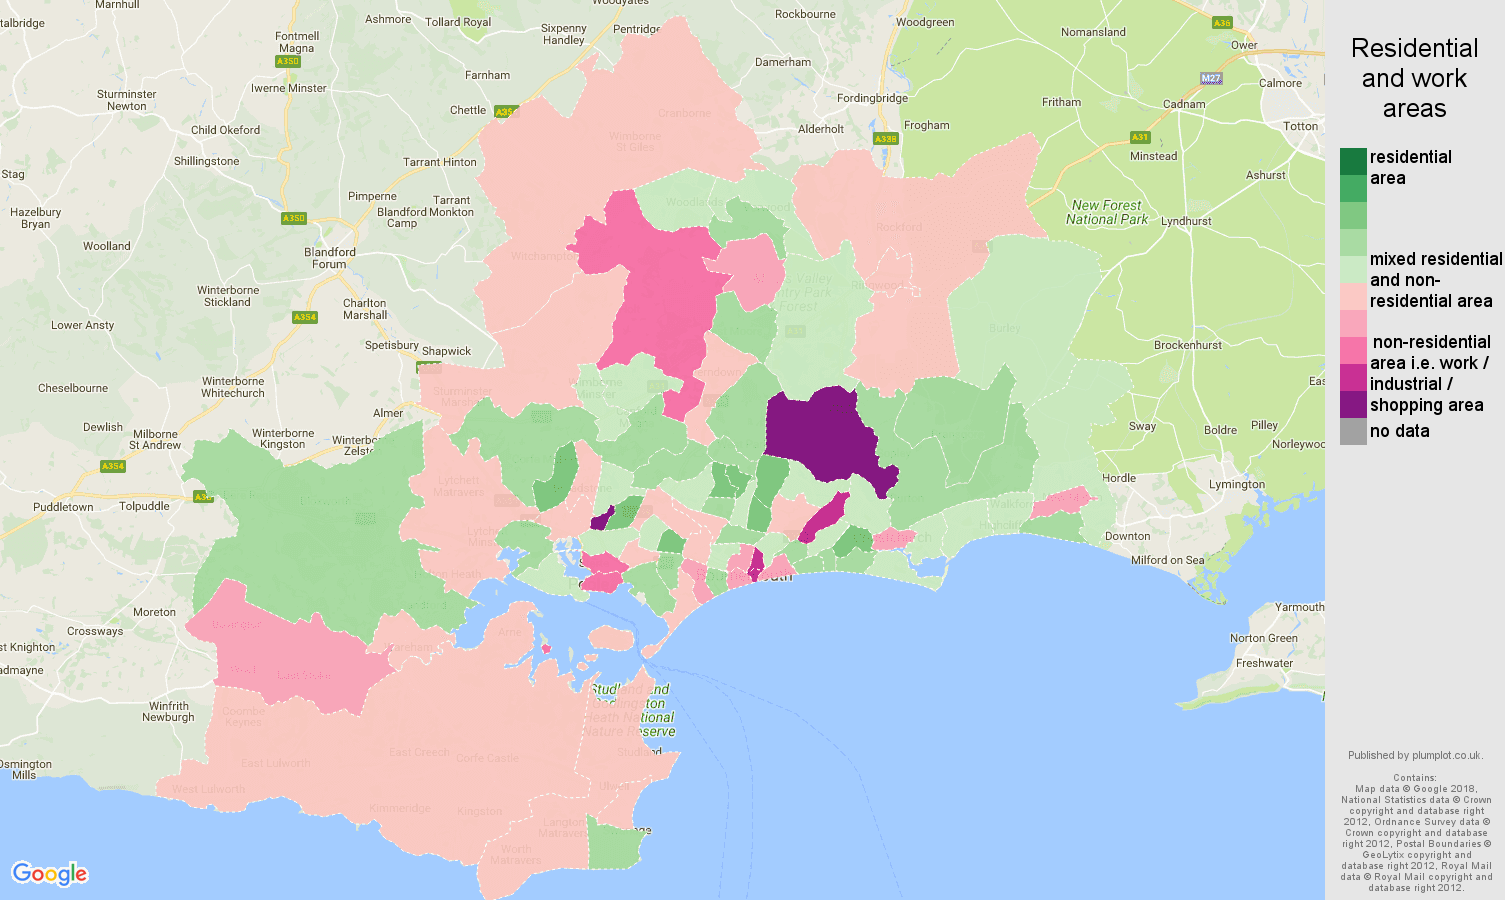 Bournemouth residential areas map